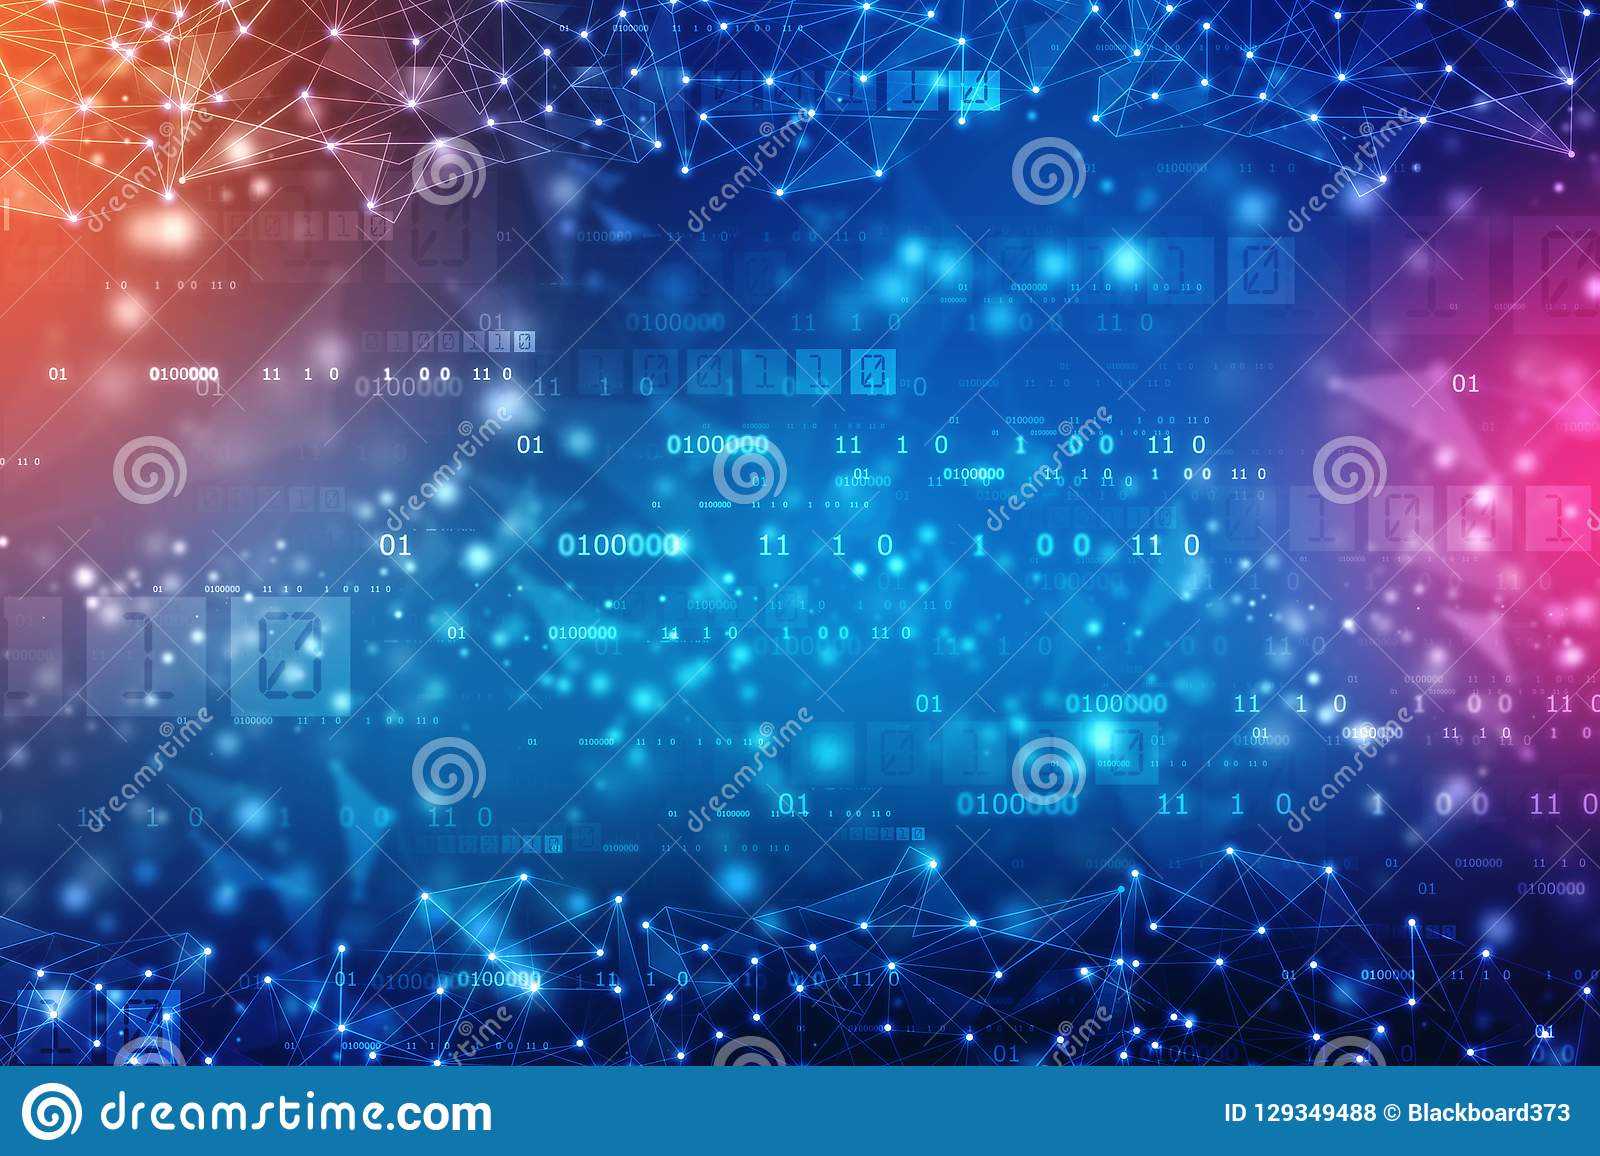 Digital Abstract technology background, cyber space background, futuristic background